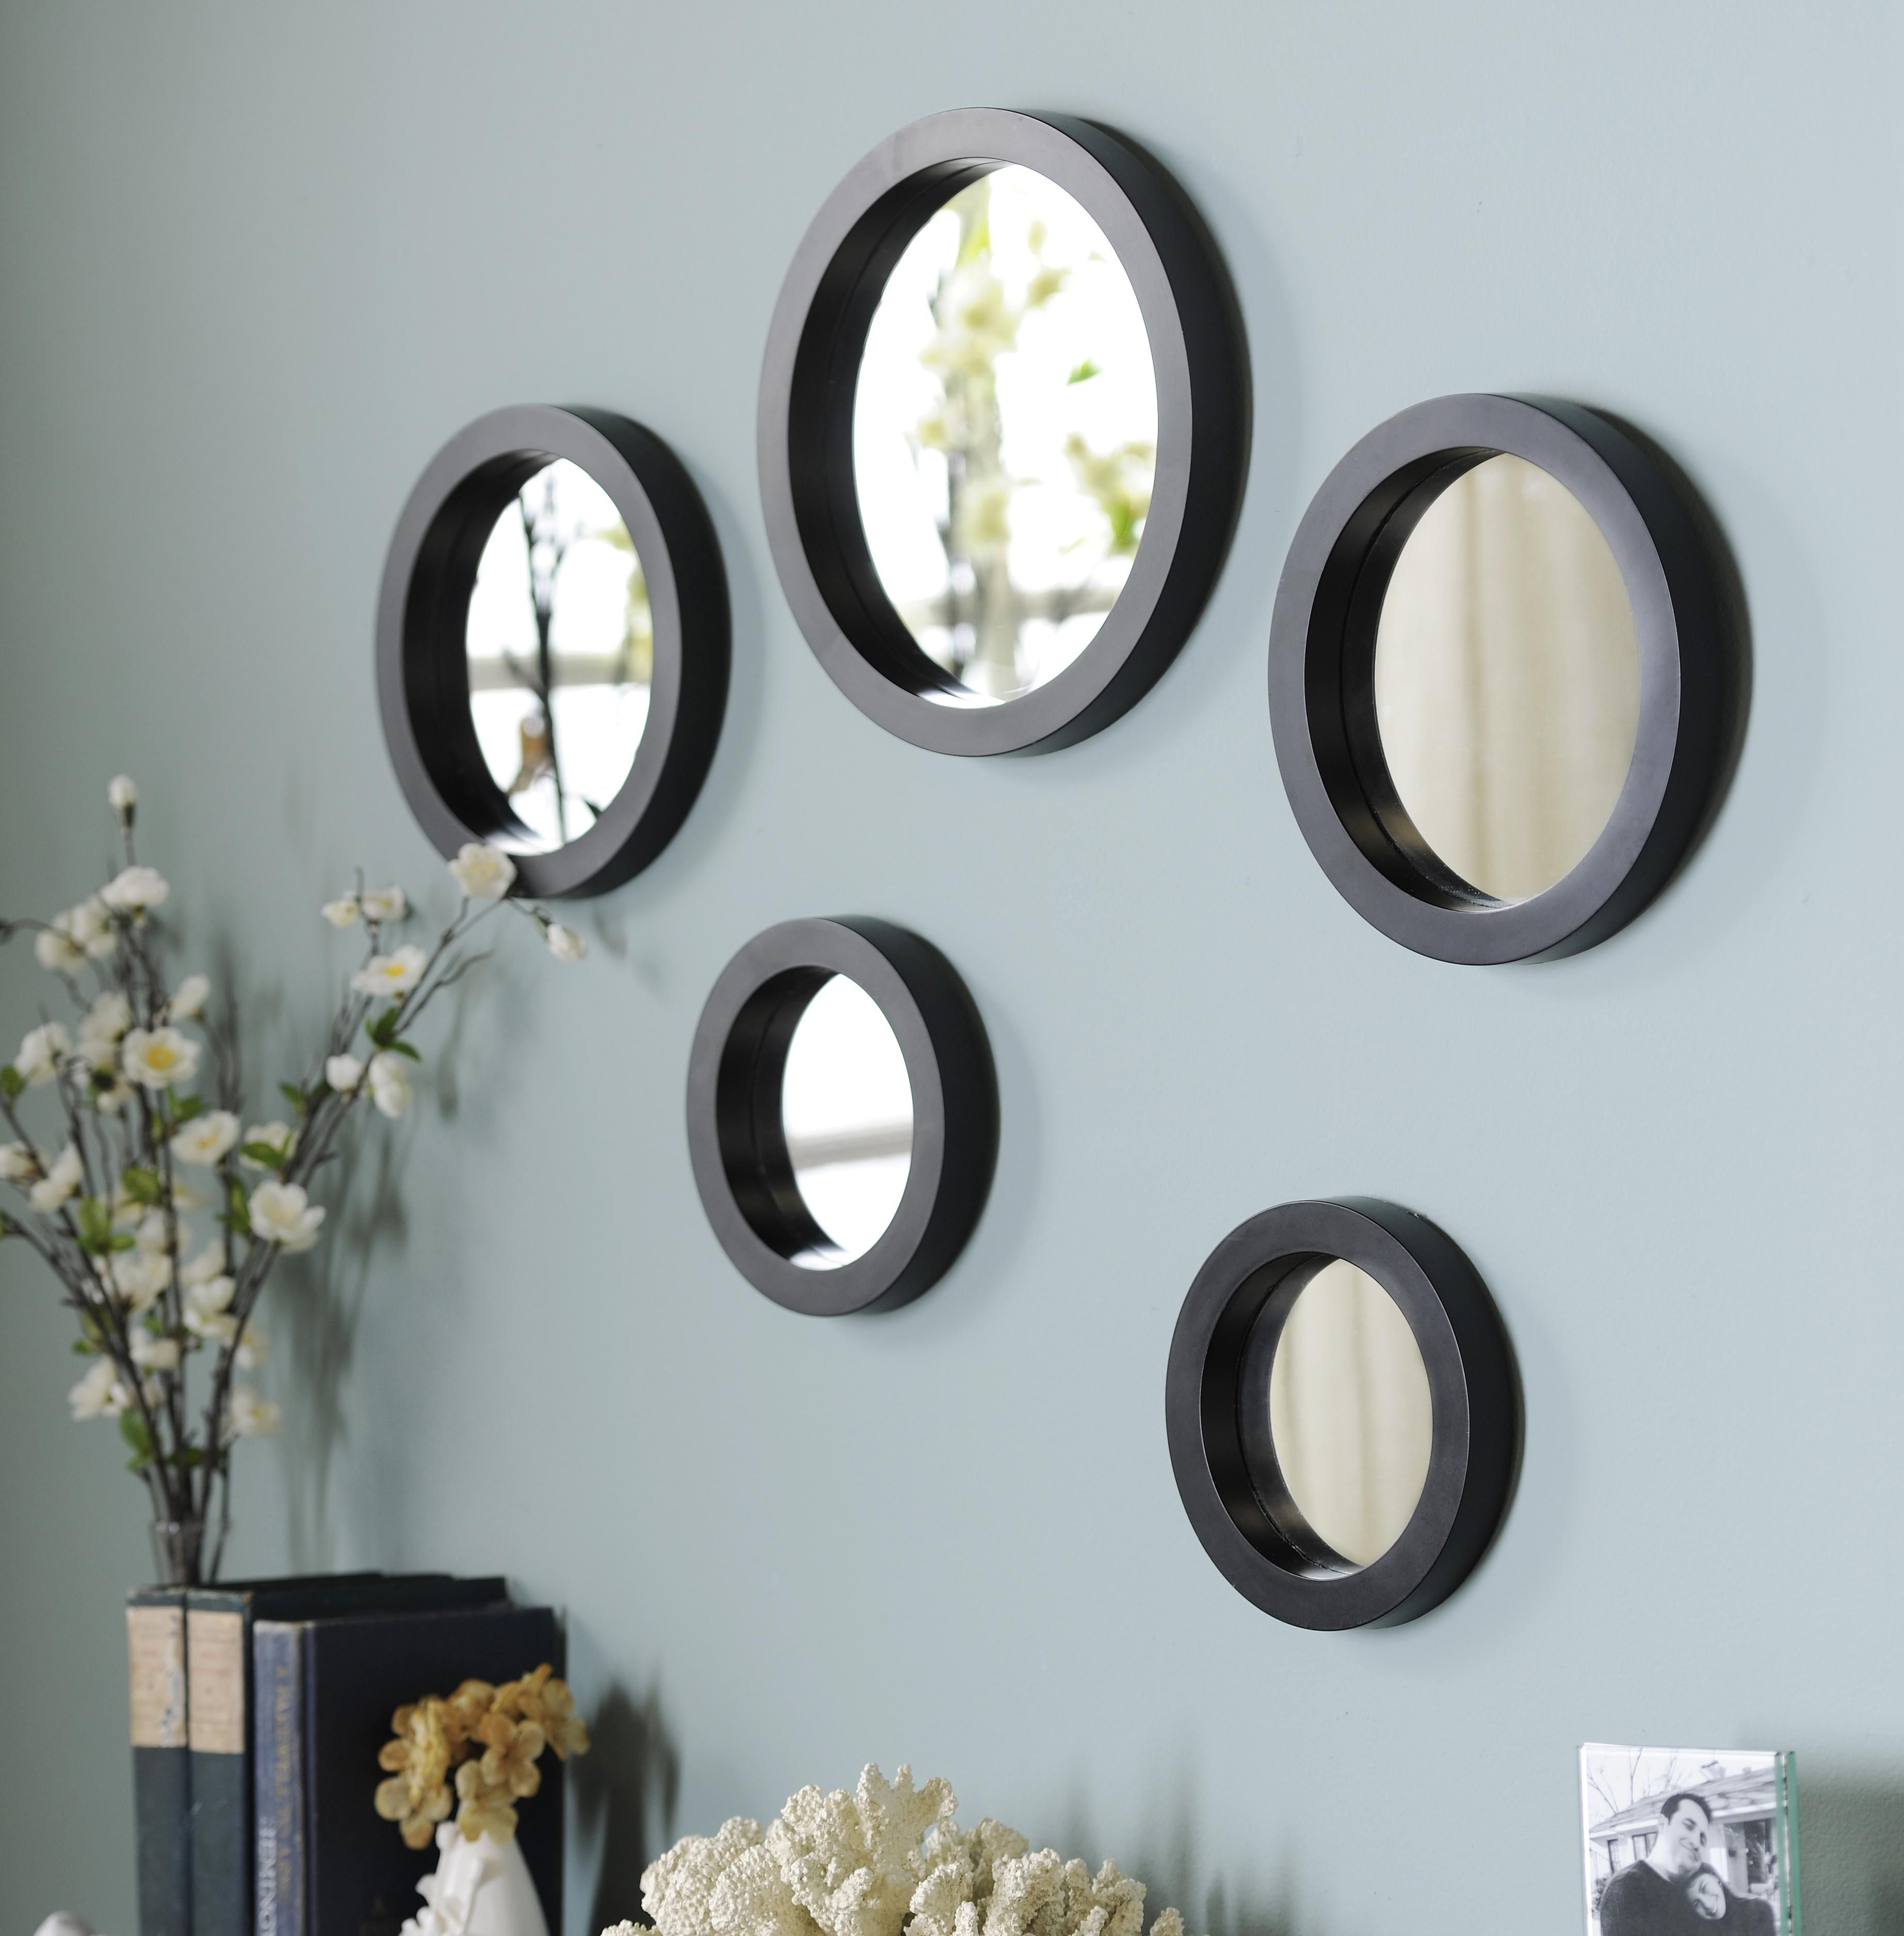 Zoe mirrors set of 7 on hautelook 0 cool things pinterest mix this small accent mirror set of 5 with other decorative wall accessories like art or sconces circle mirrors amipublicfo Gallery